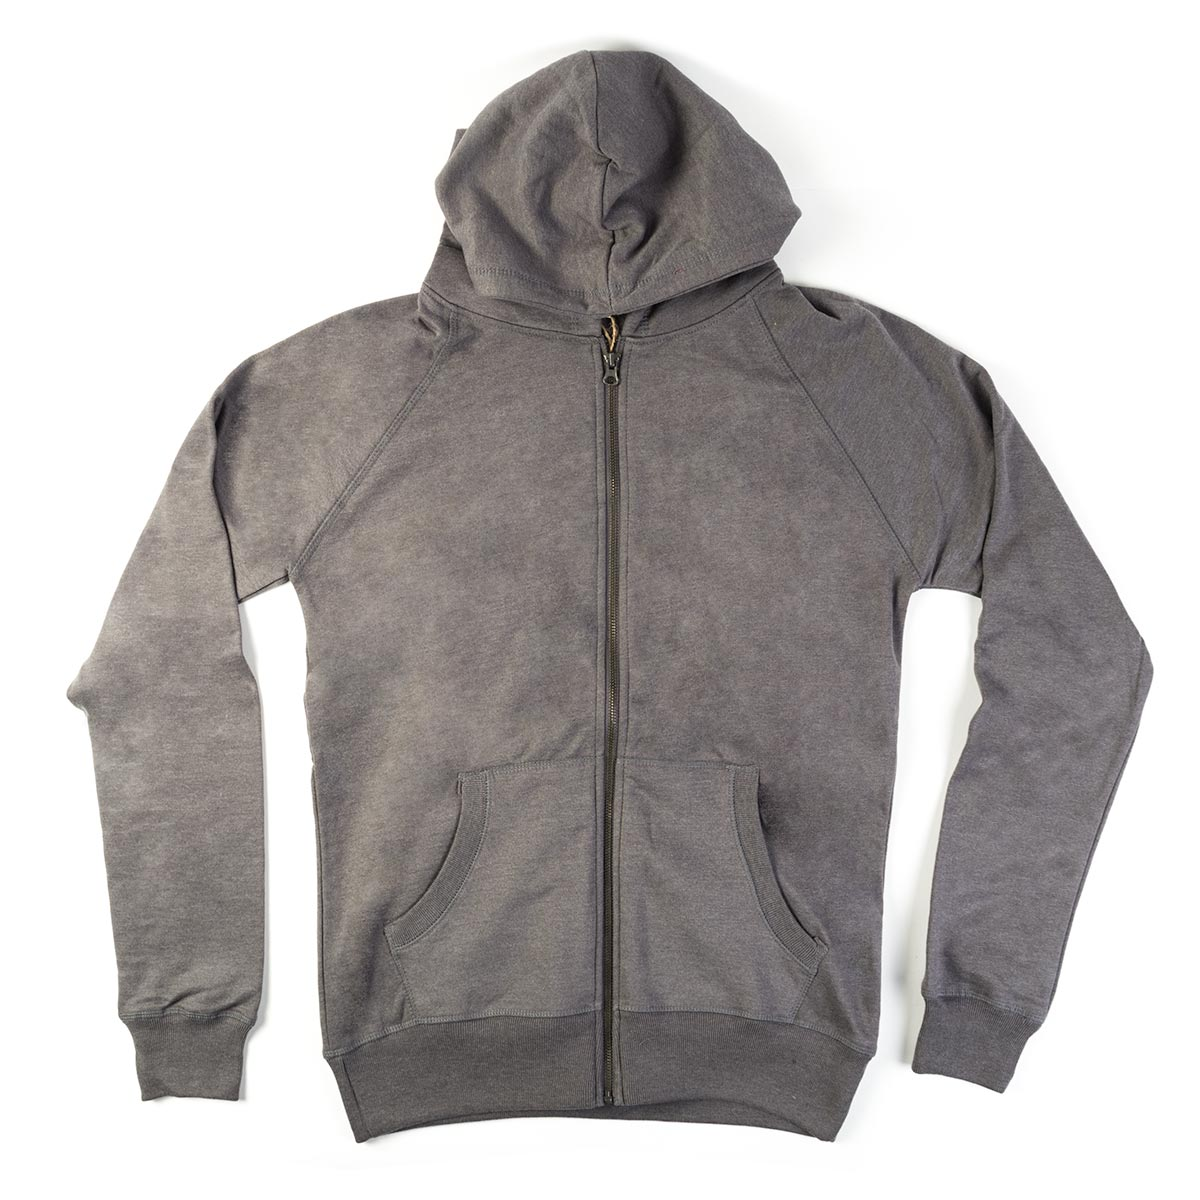 Salvage Recycled Zip-Up Hoodies